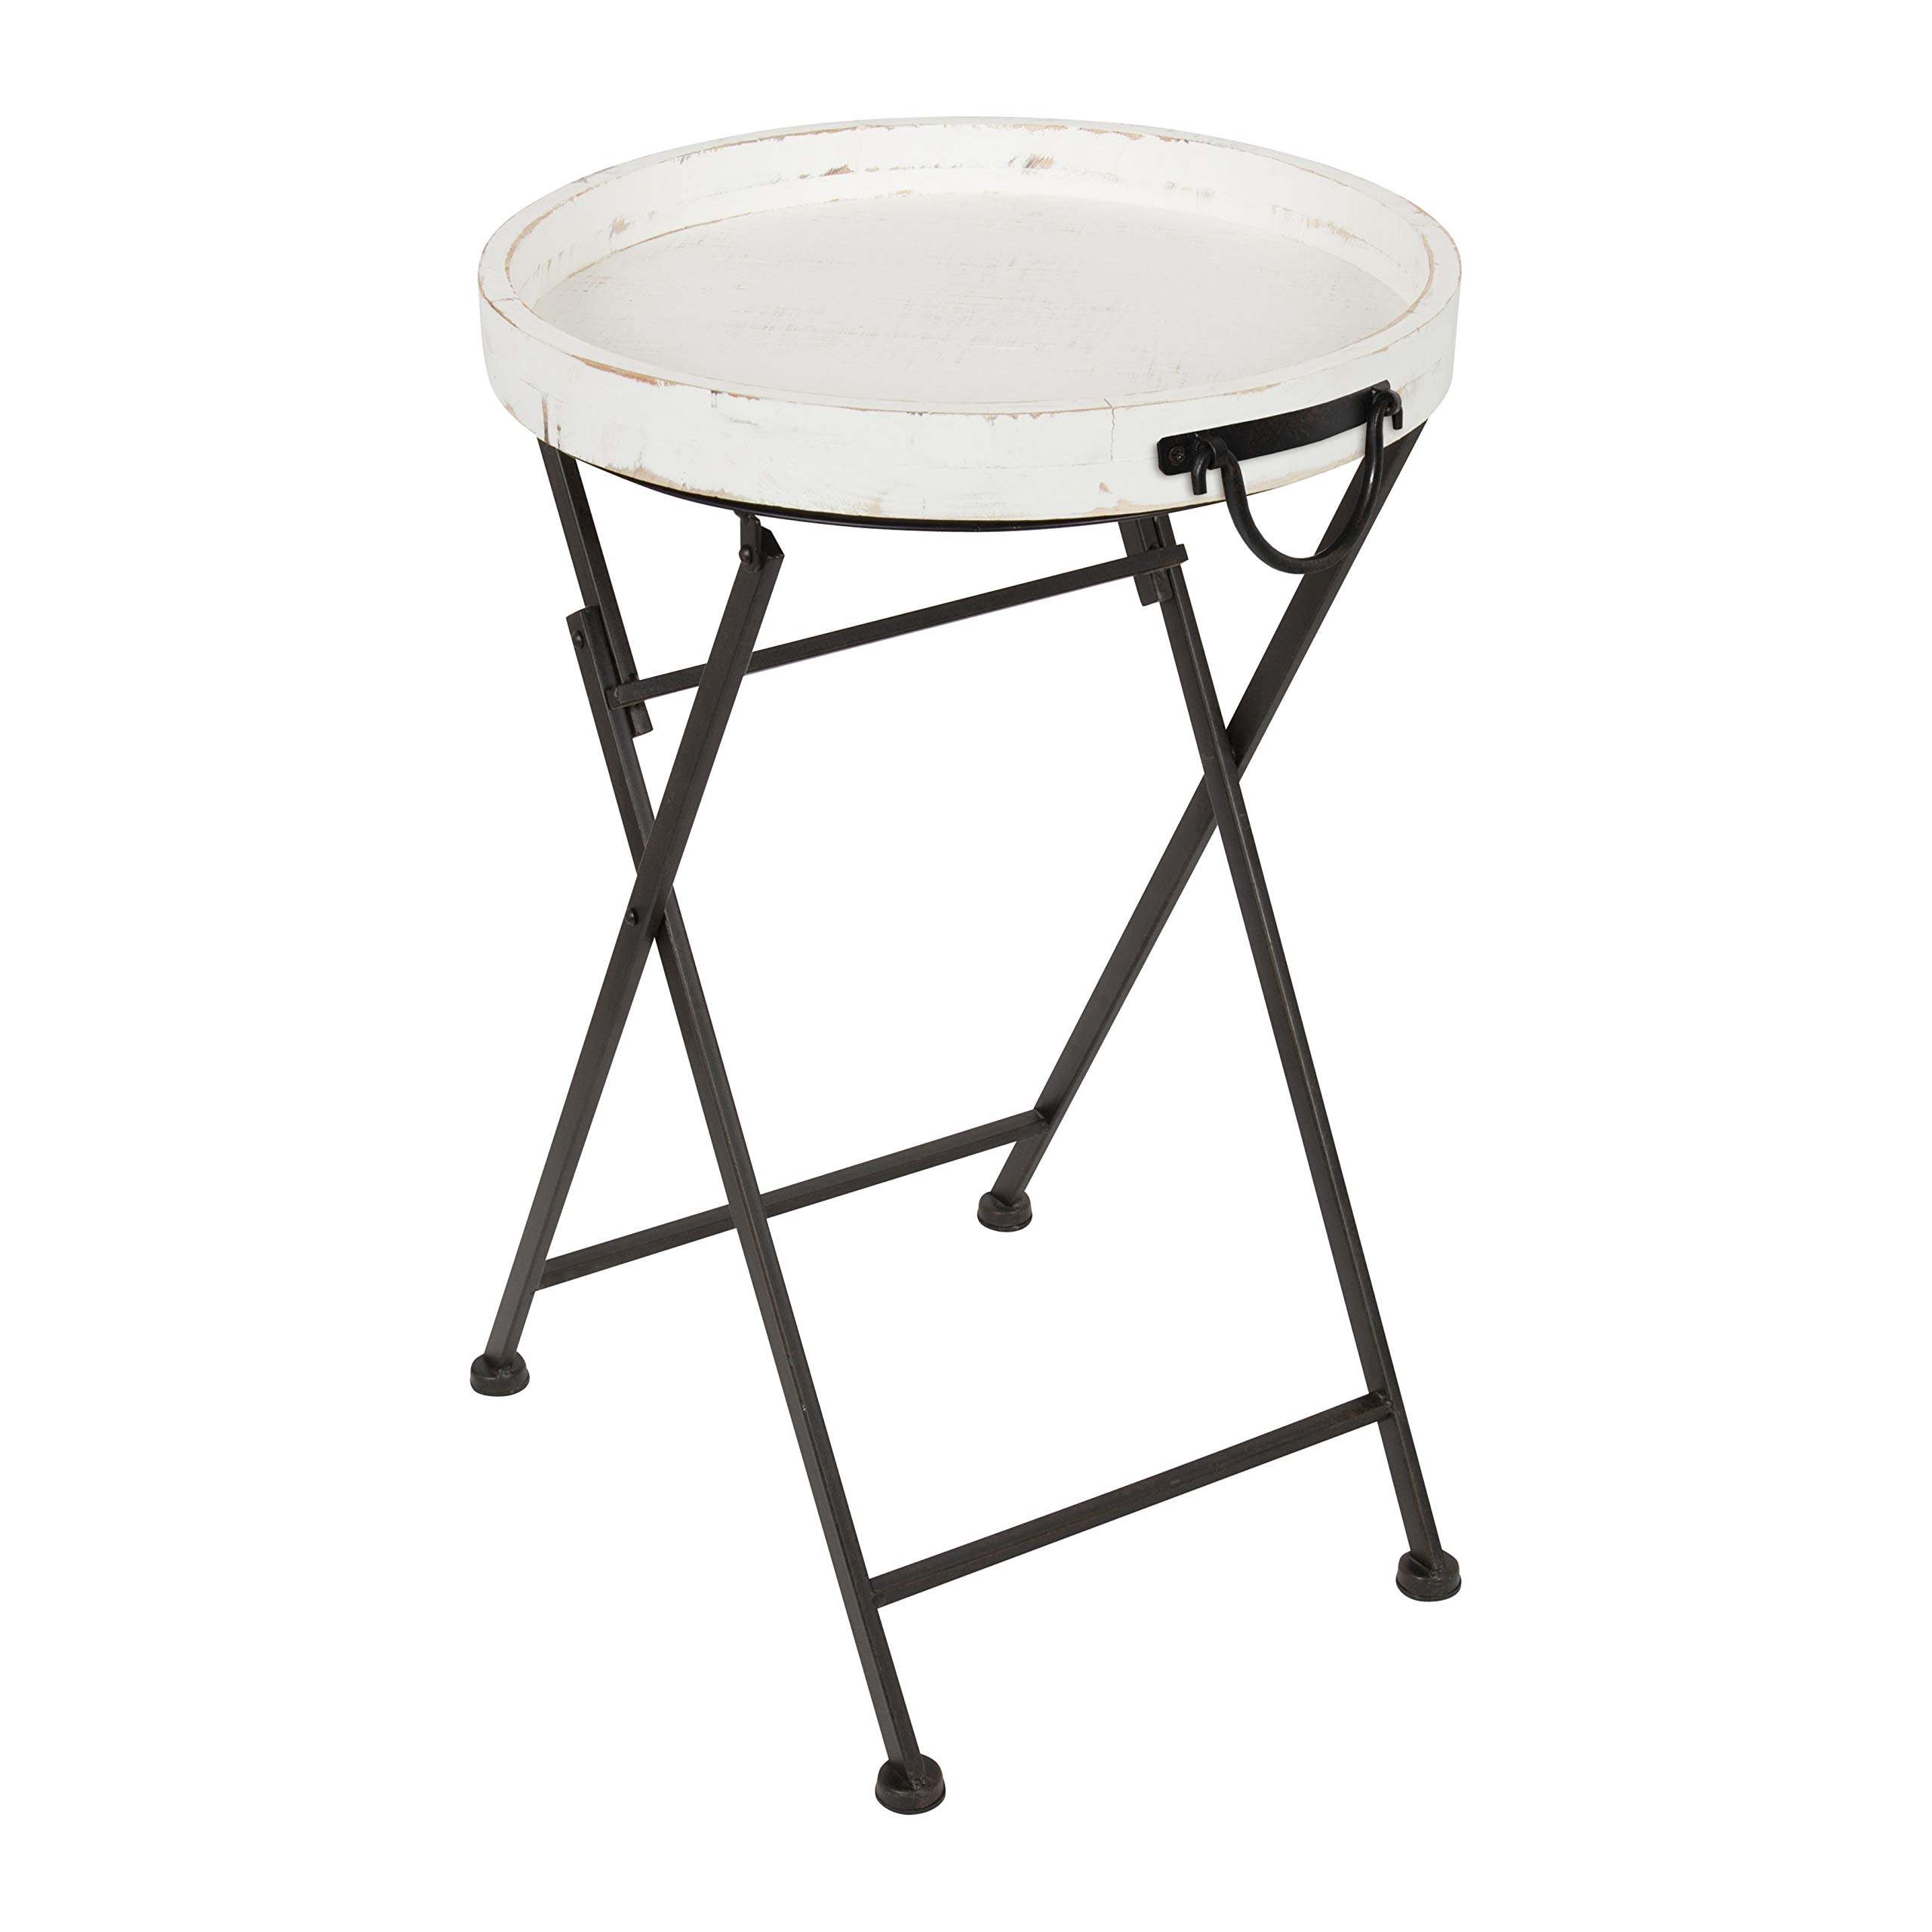 Kate and Laurel Marmora Round Wood and Metal Pop Up Tray Table, White by Kate and Laurel